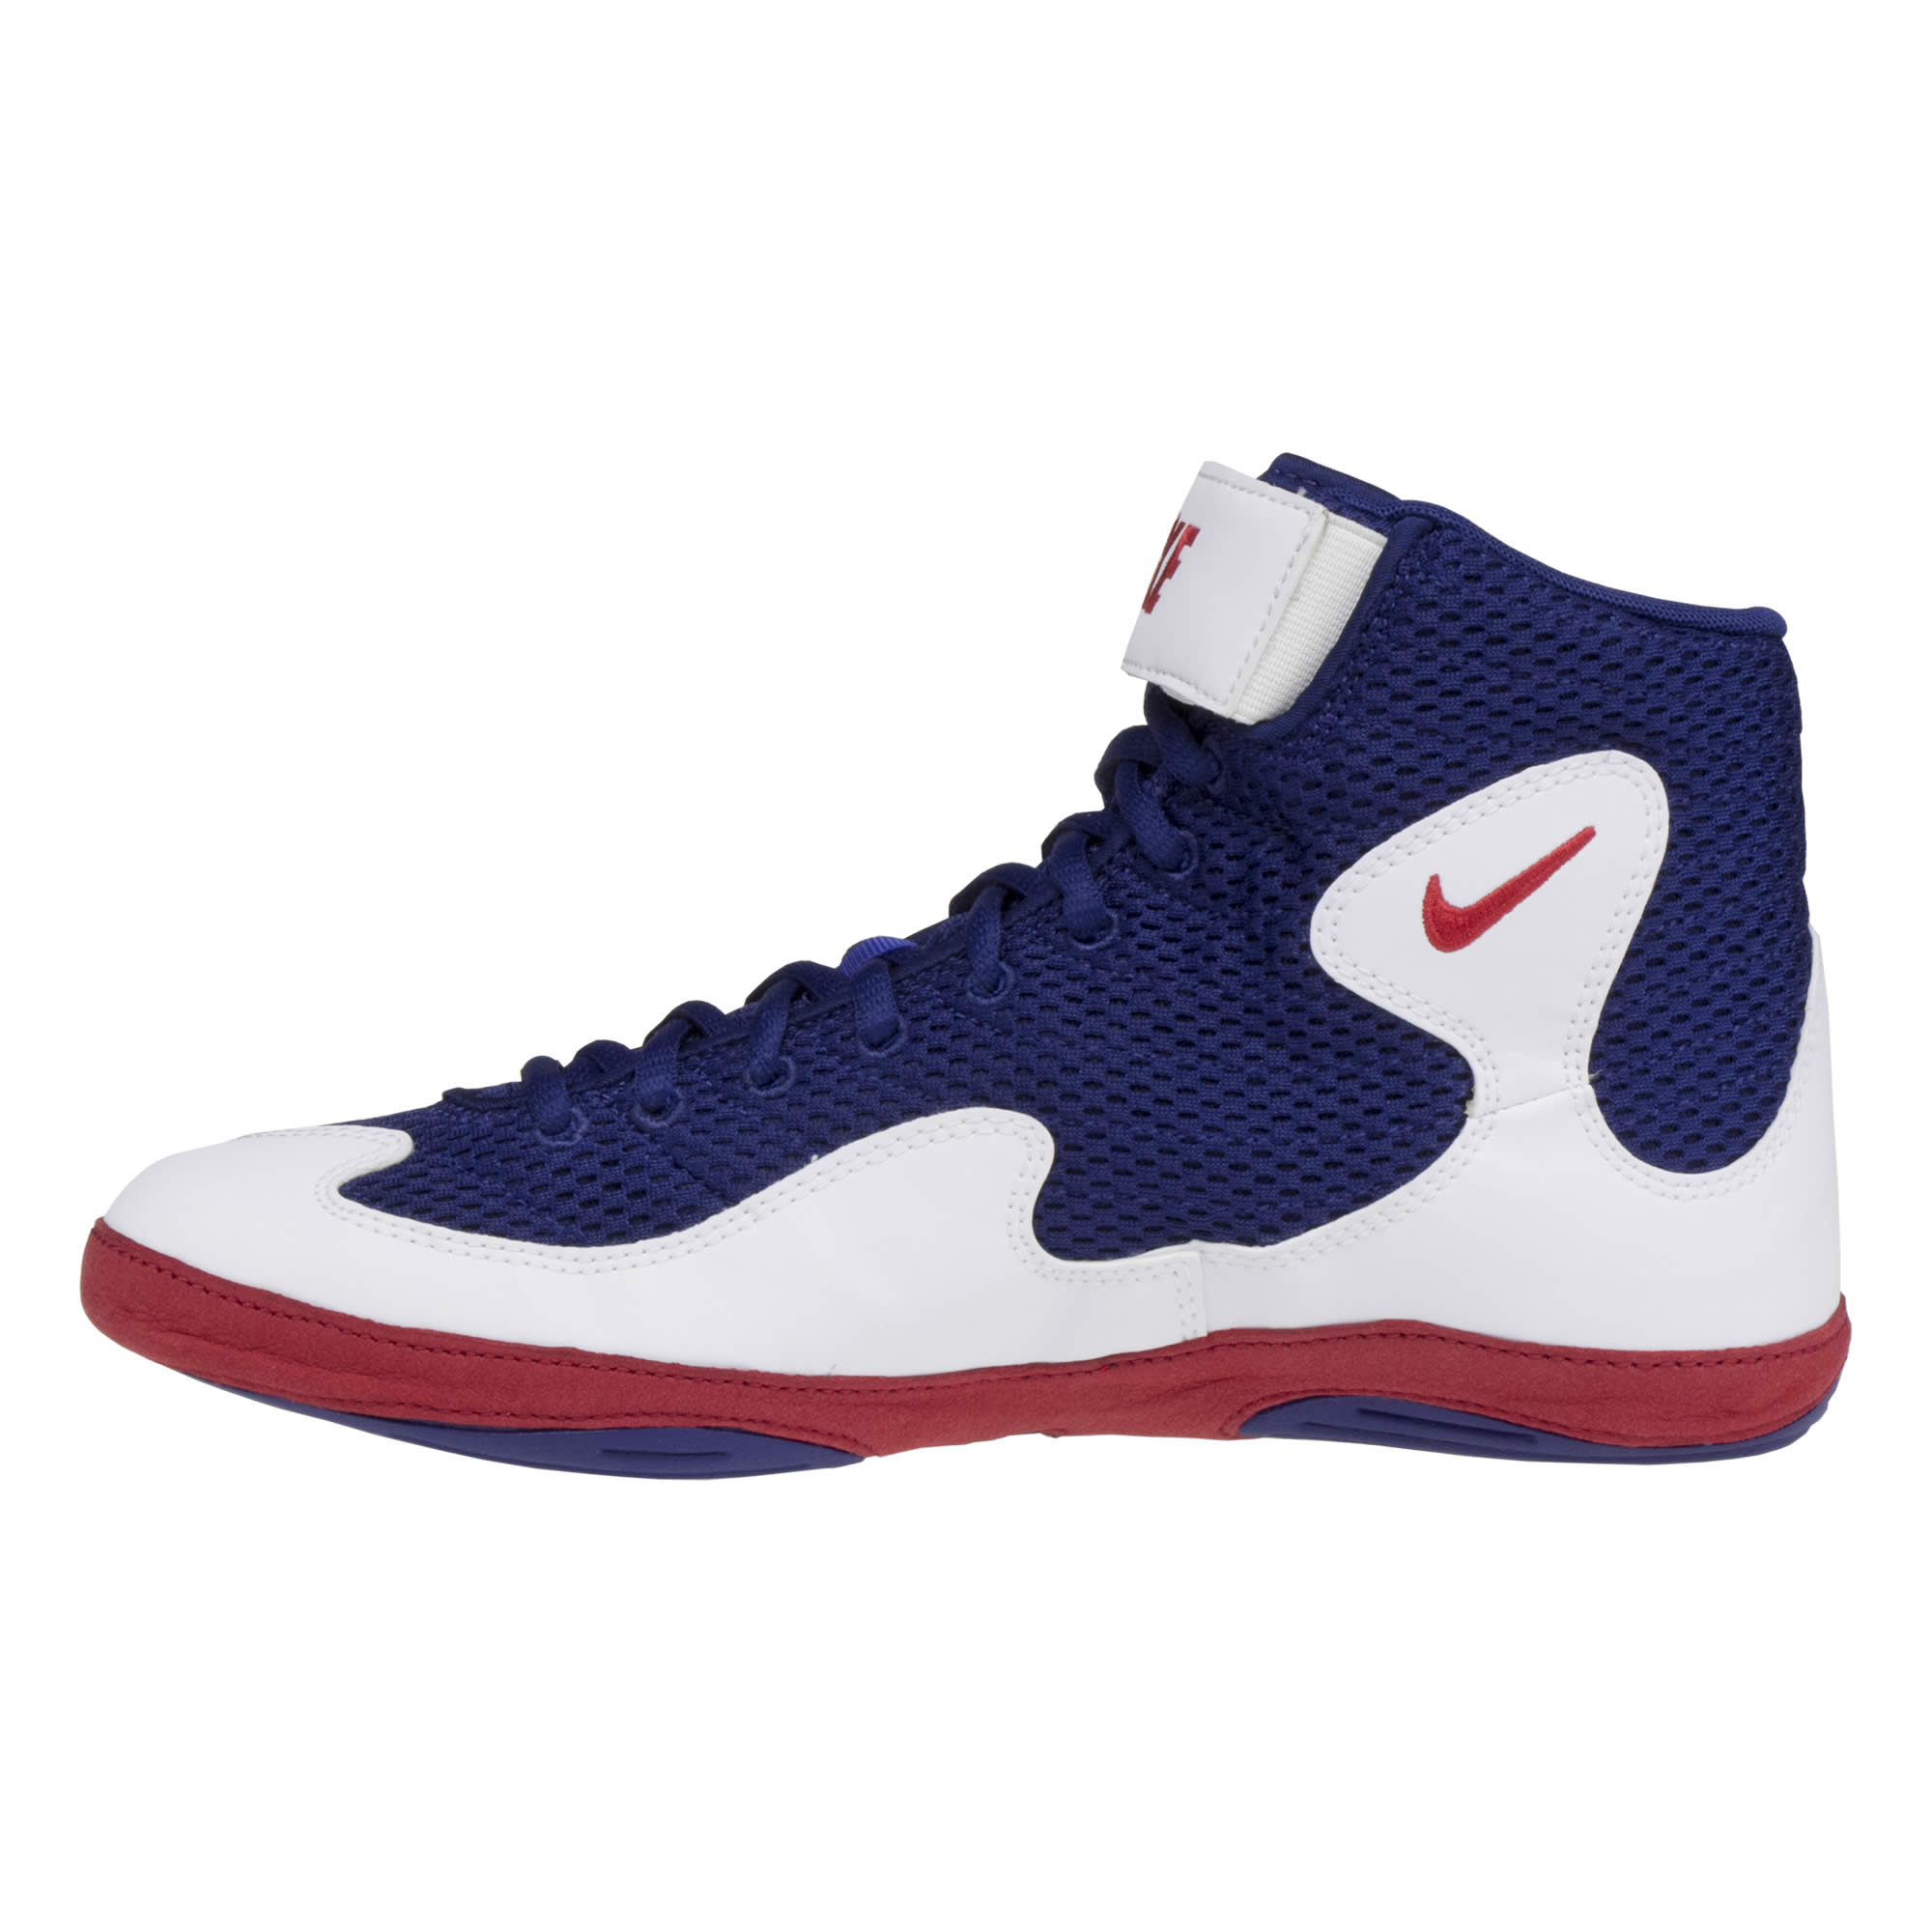 f866361b7084b6 ... outsideNike Inflict 3 Royal Blue Red White ...